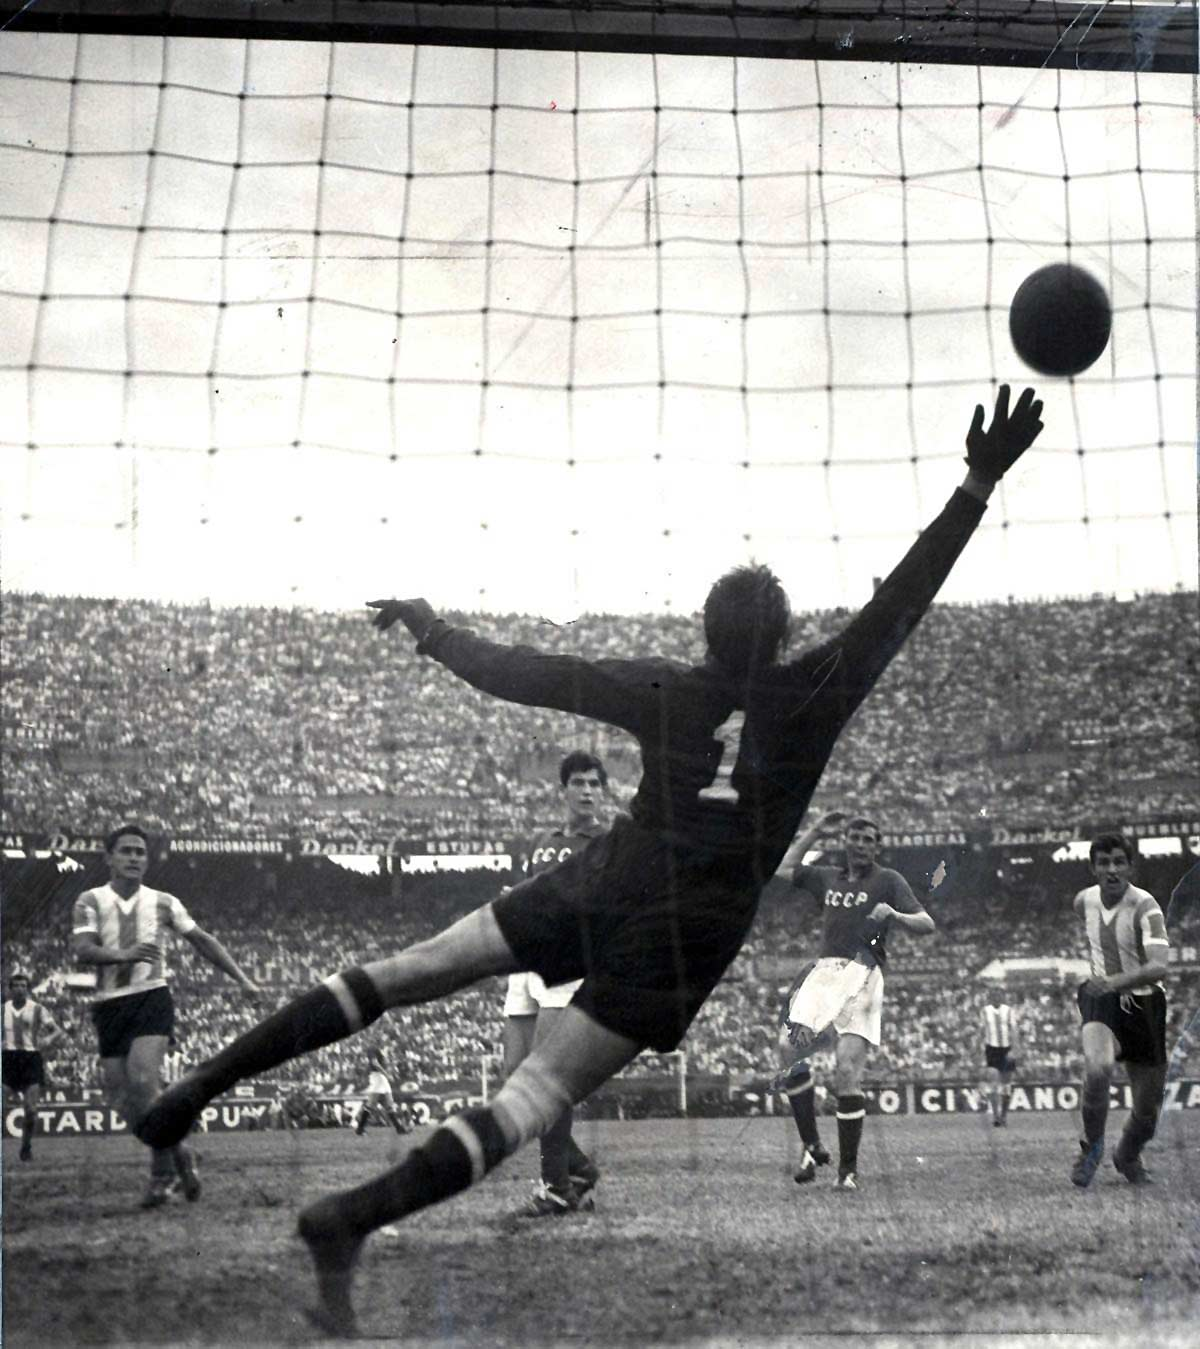 The 'Black Octopus' saves his side again: Lev Yashin in action, USSR v Argentina, Buenos Aires 1961 (Photo: Wikimedia Commons)